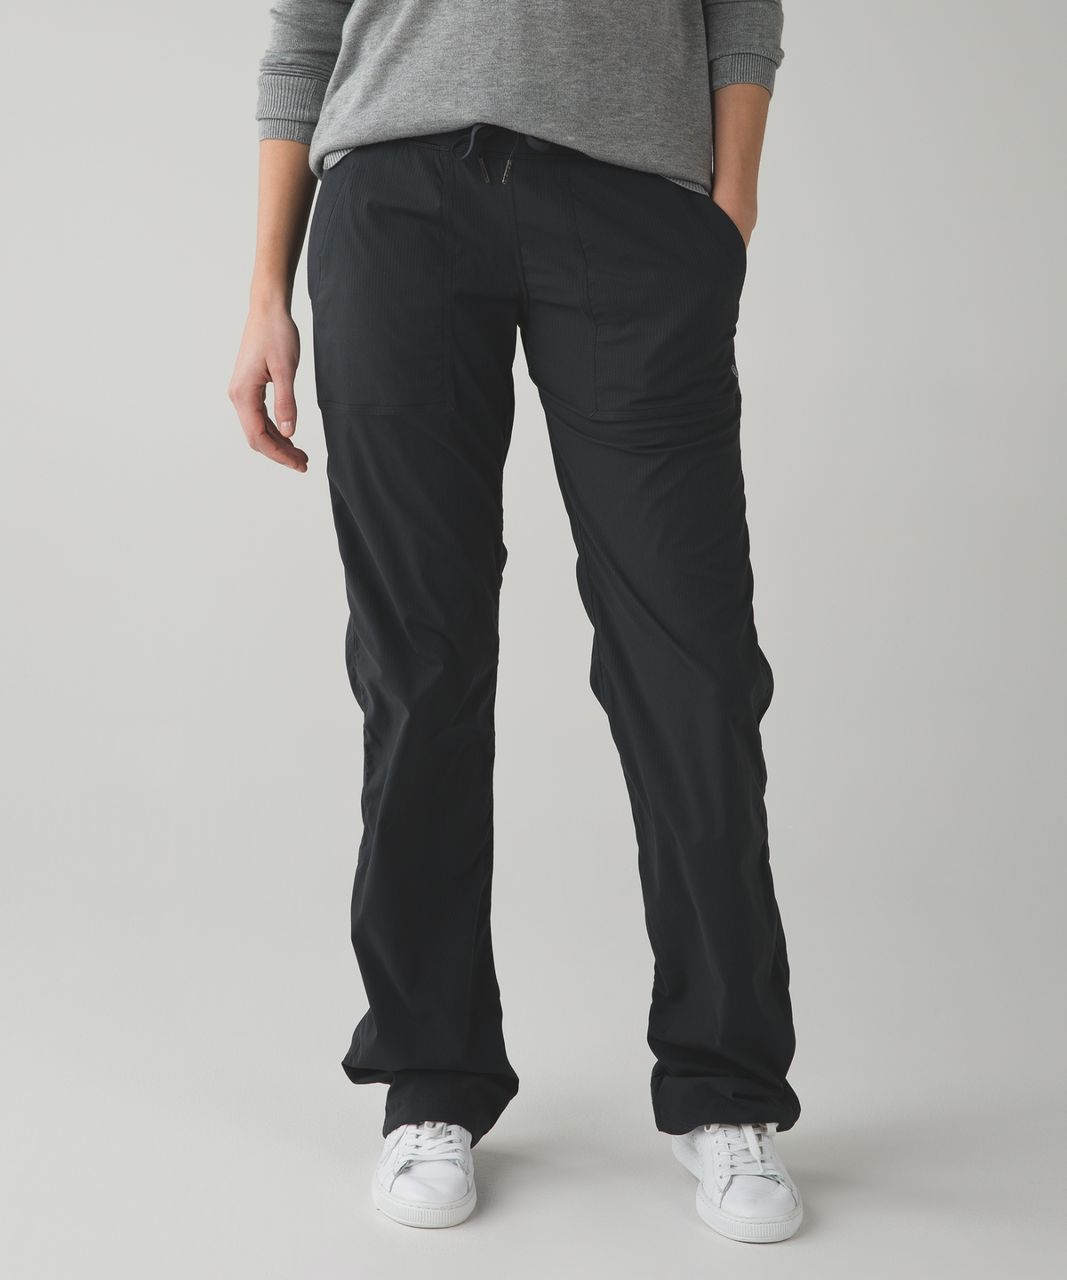 Lululemon Studio Pant III (Tall) - Deep Coal